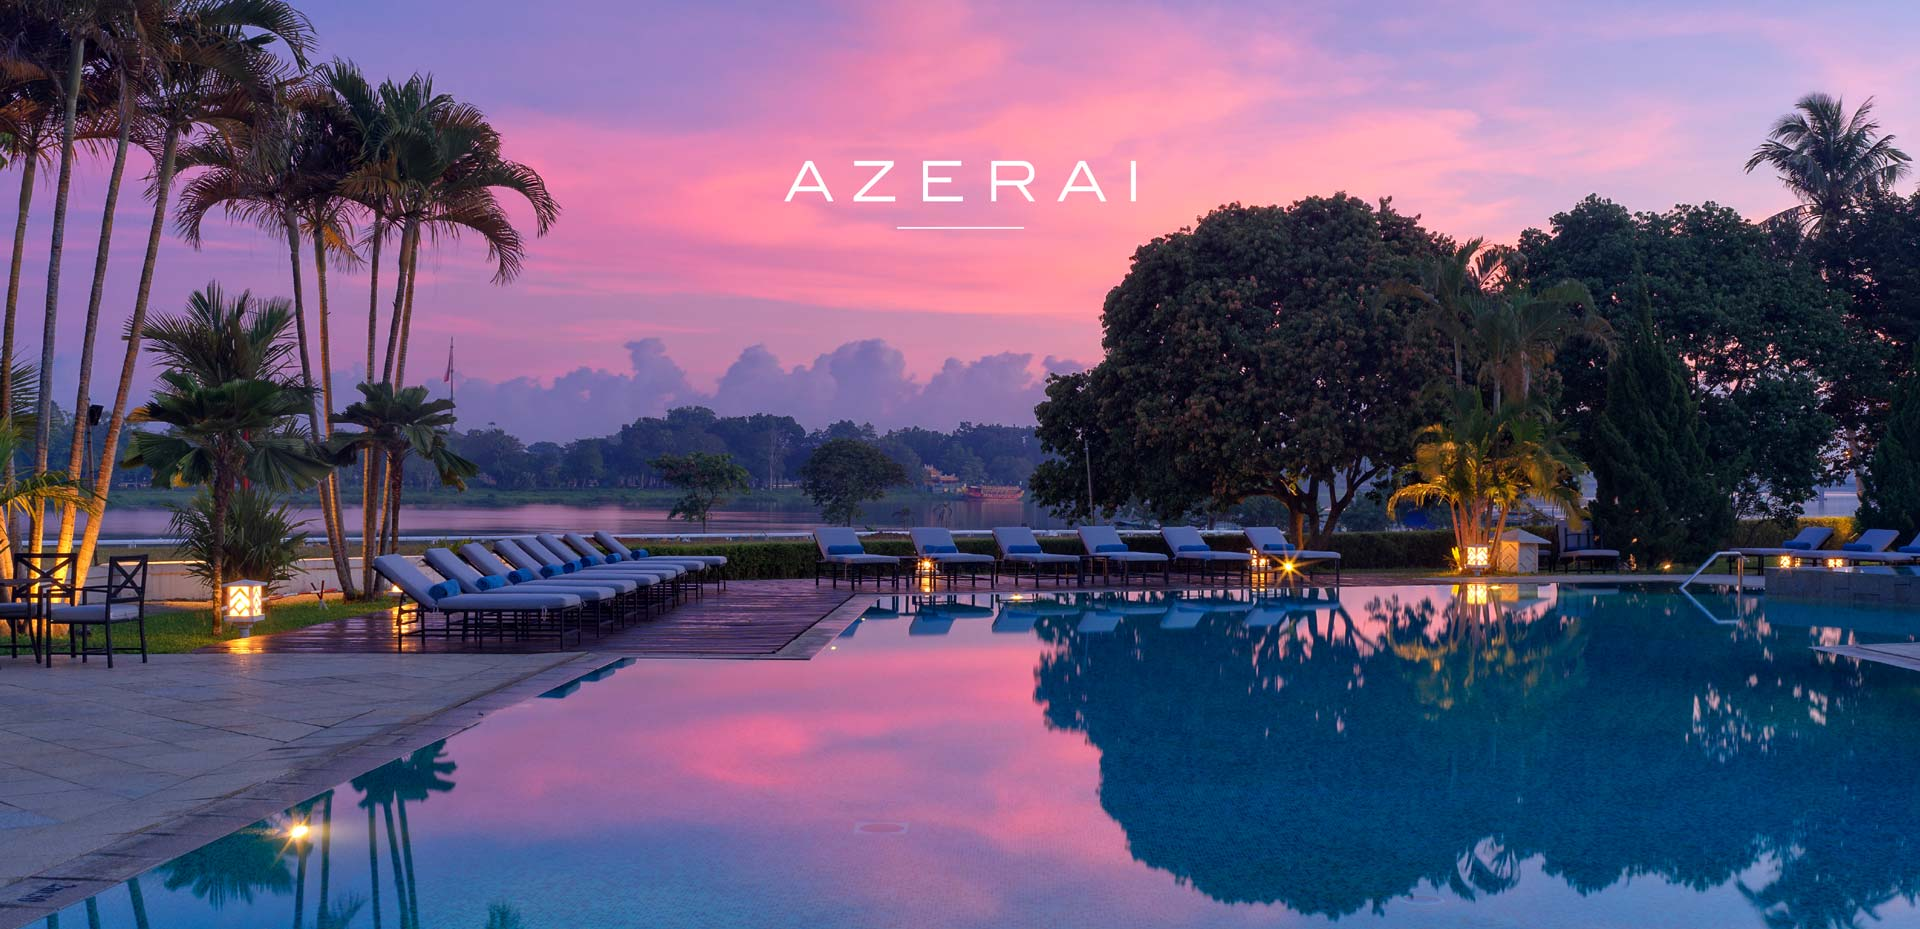 Azerai La Residence, Hue debuts with a new Nucleus website